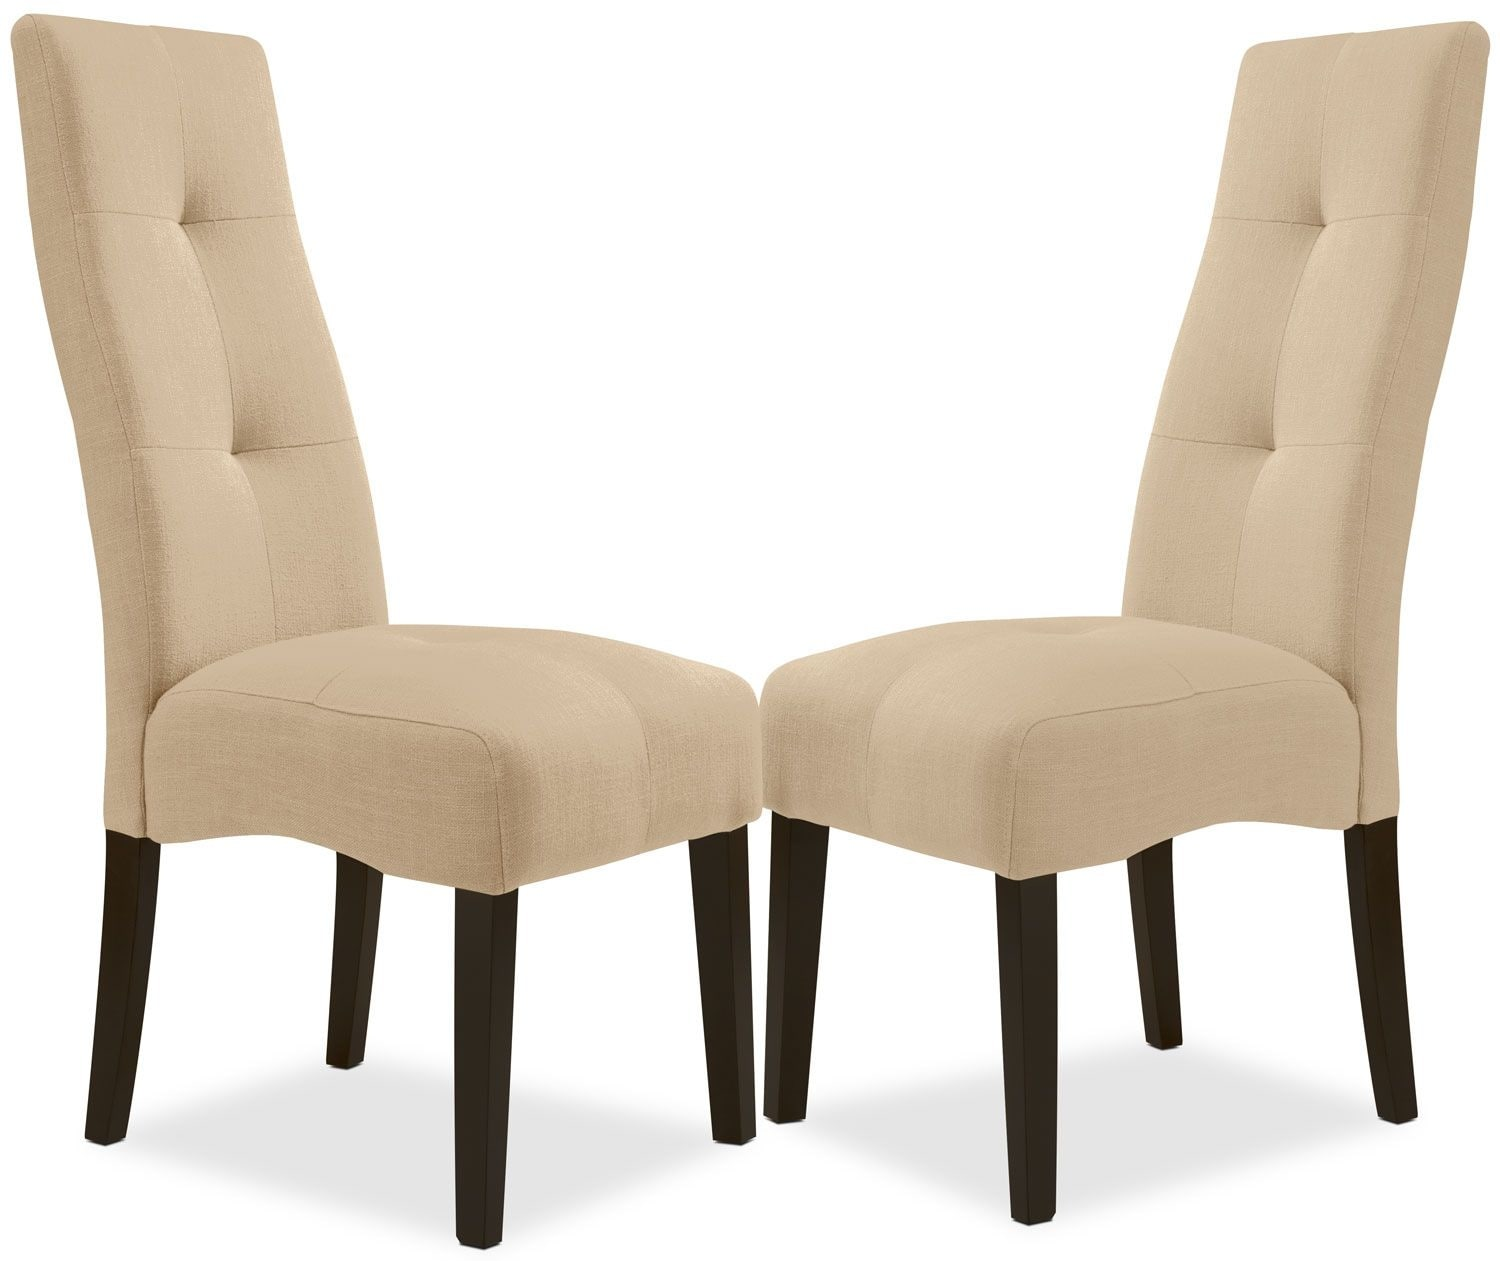 Sadie Beige Dining Chair – Set of 2